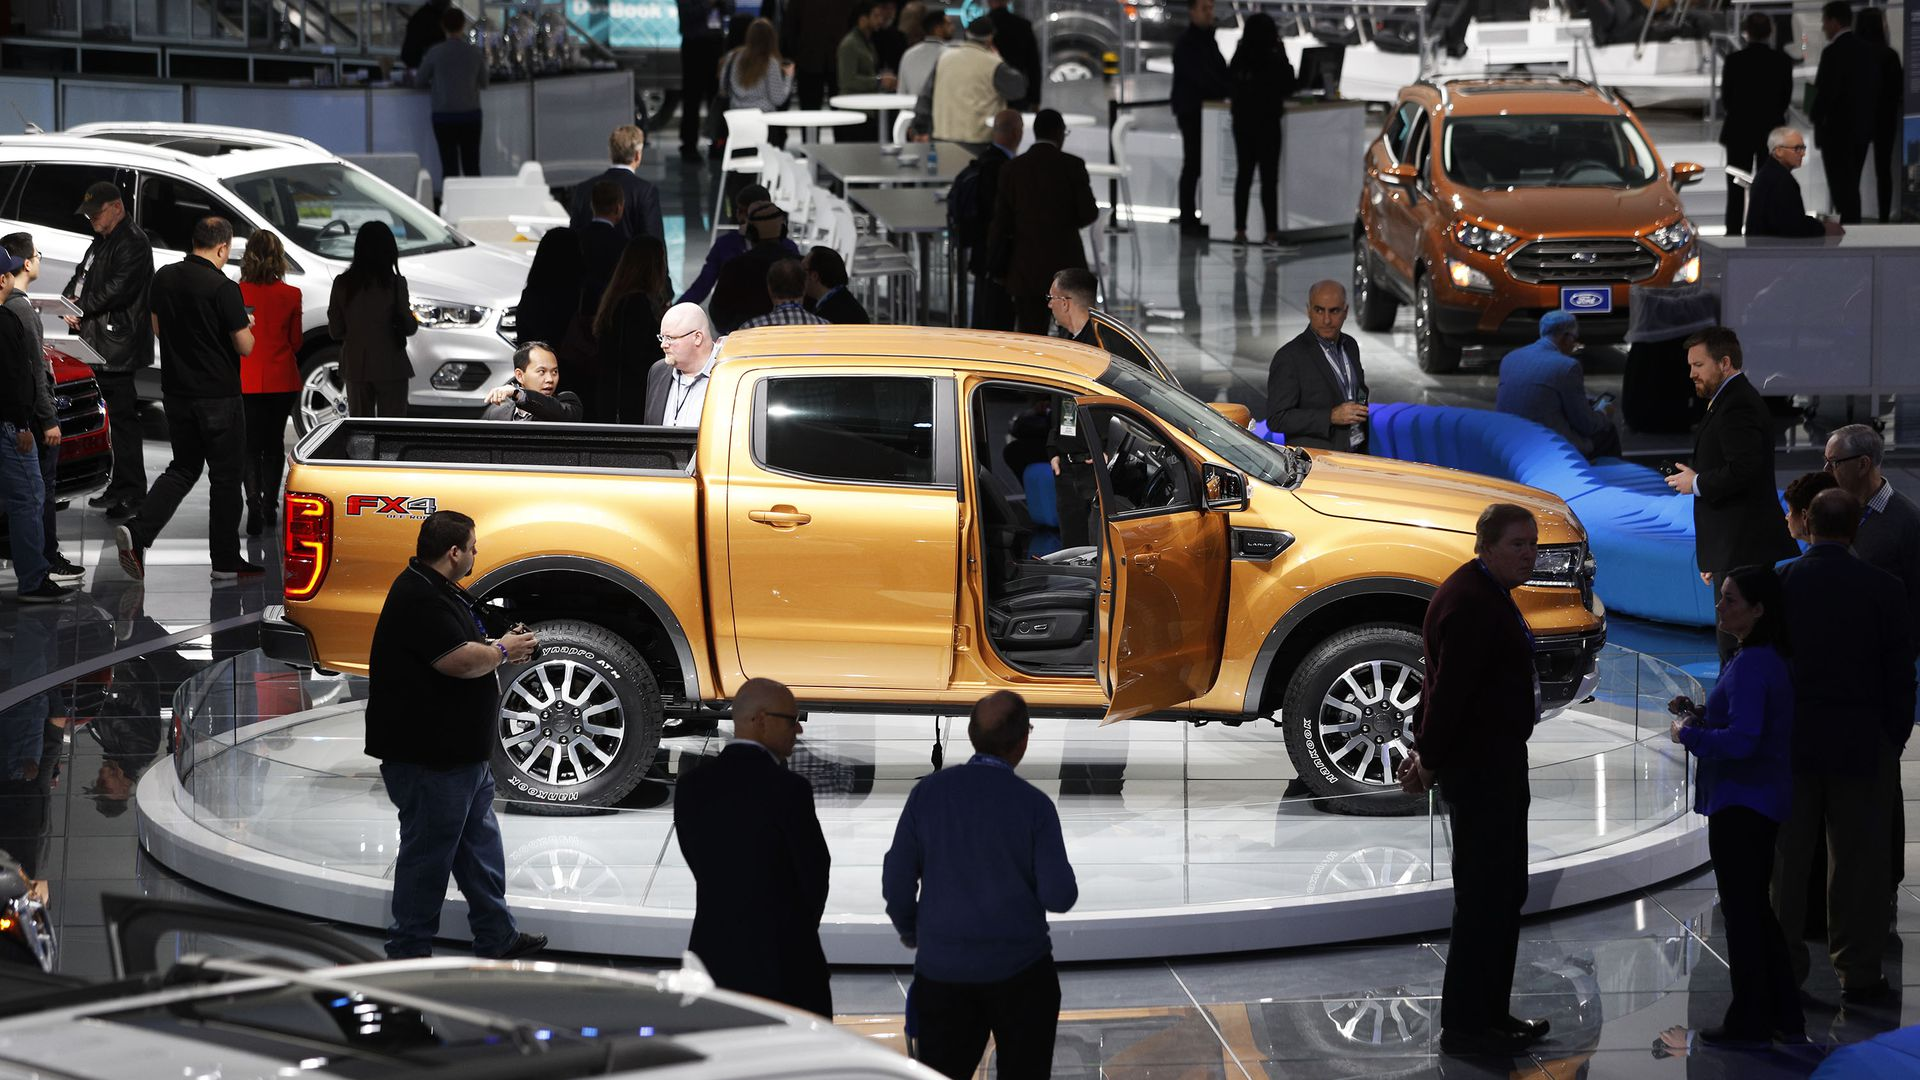 A truck amongst a crowd of people at the Detroit Auto Show